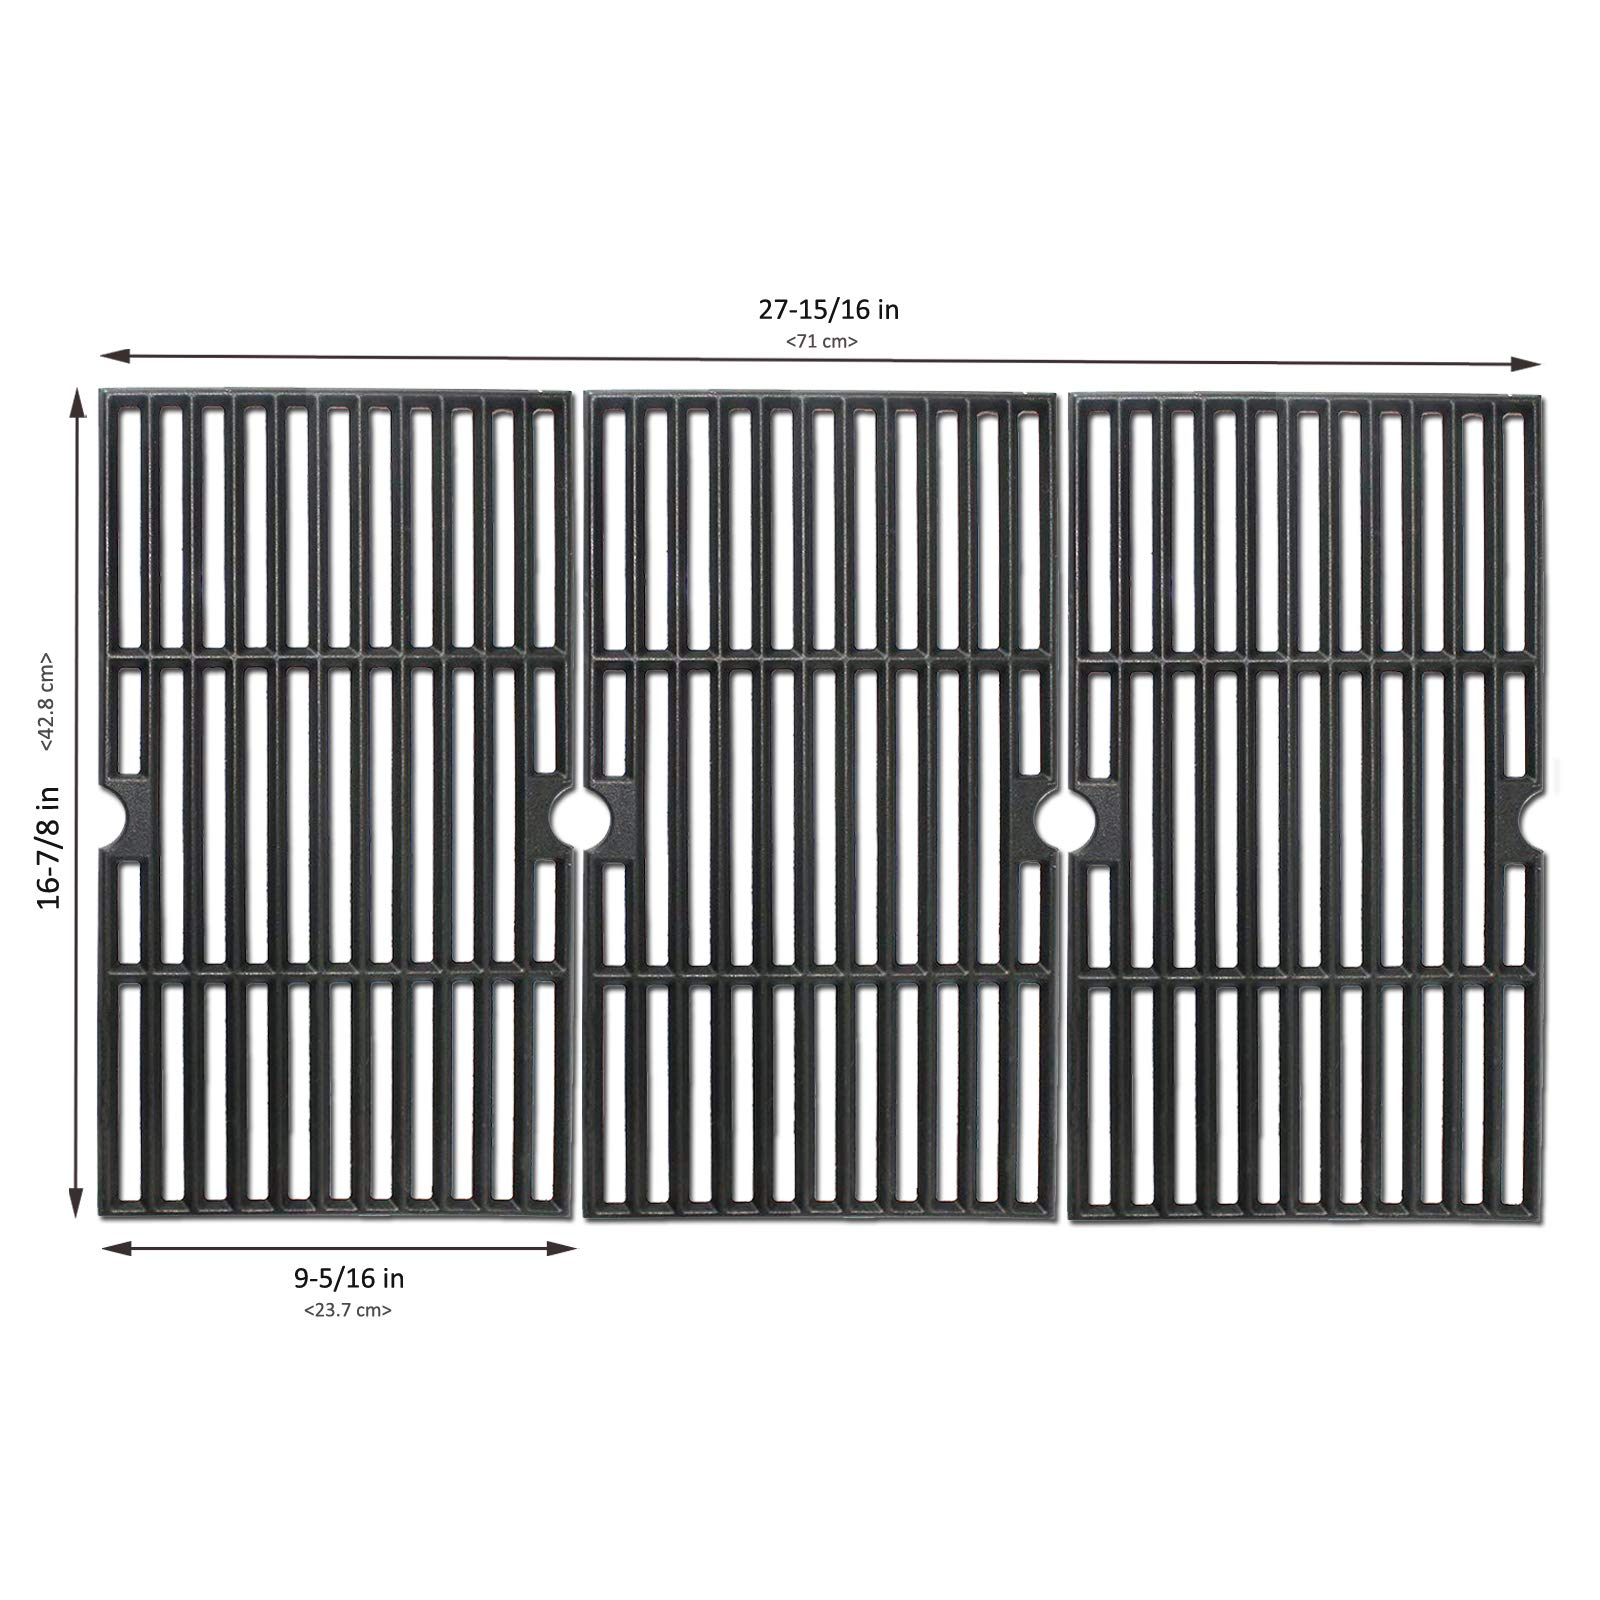 BBQMall Cast Iron Grill Cooking Grate Fit for Charbroil 463420508, 463420509, 463420511, 463436213, 463436214, 463436215, 463440109, 463441312, 463441514, 463461613 Gas Grills by BBQMall